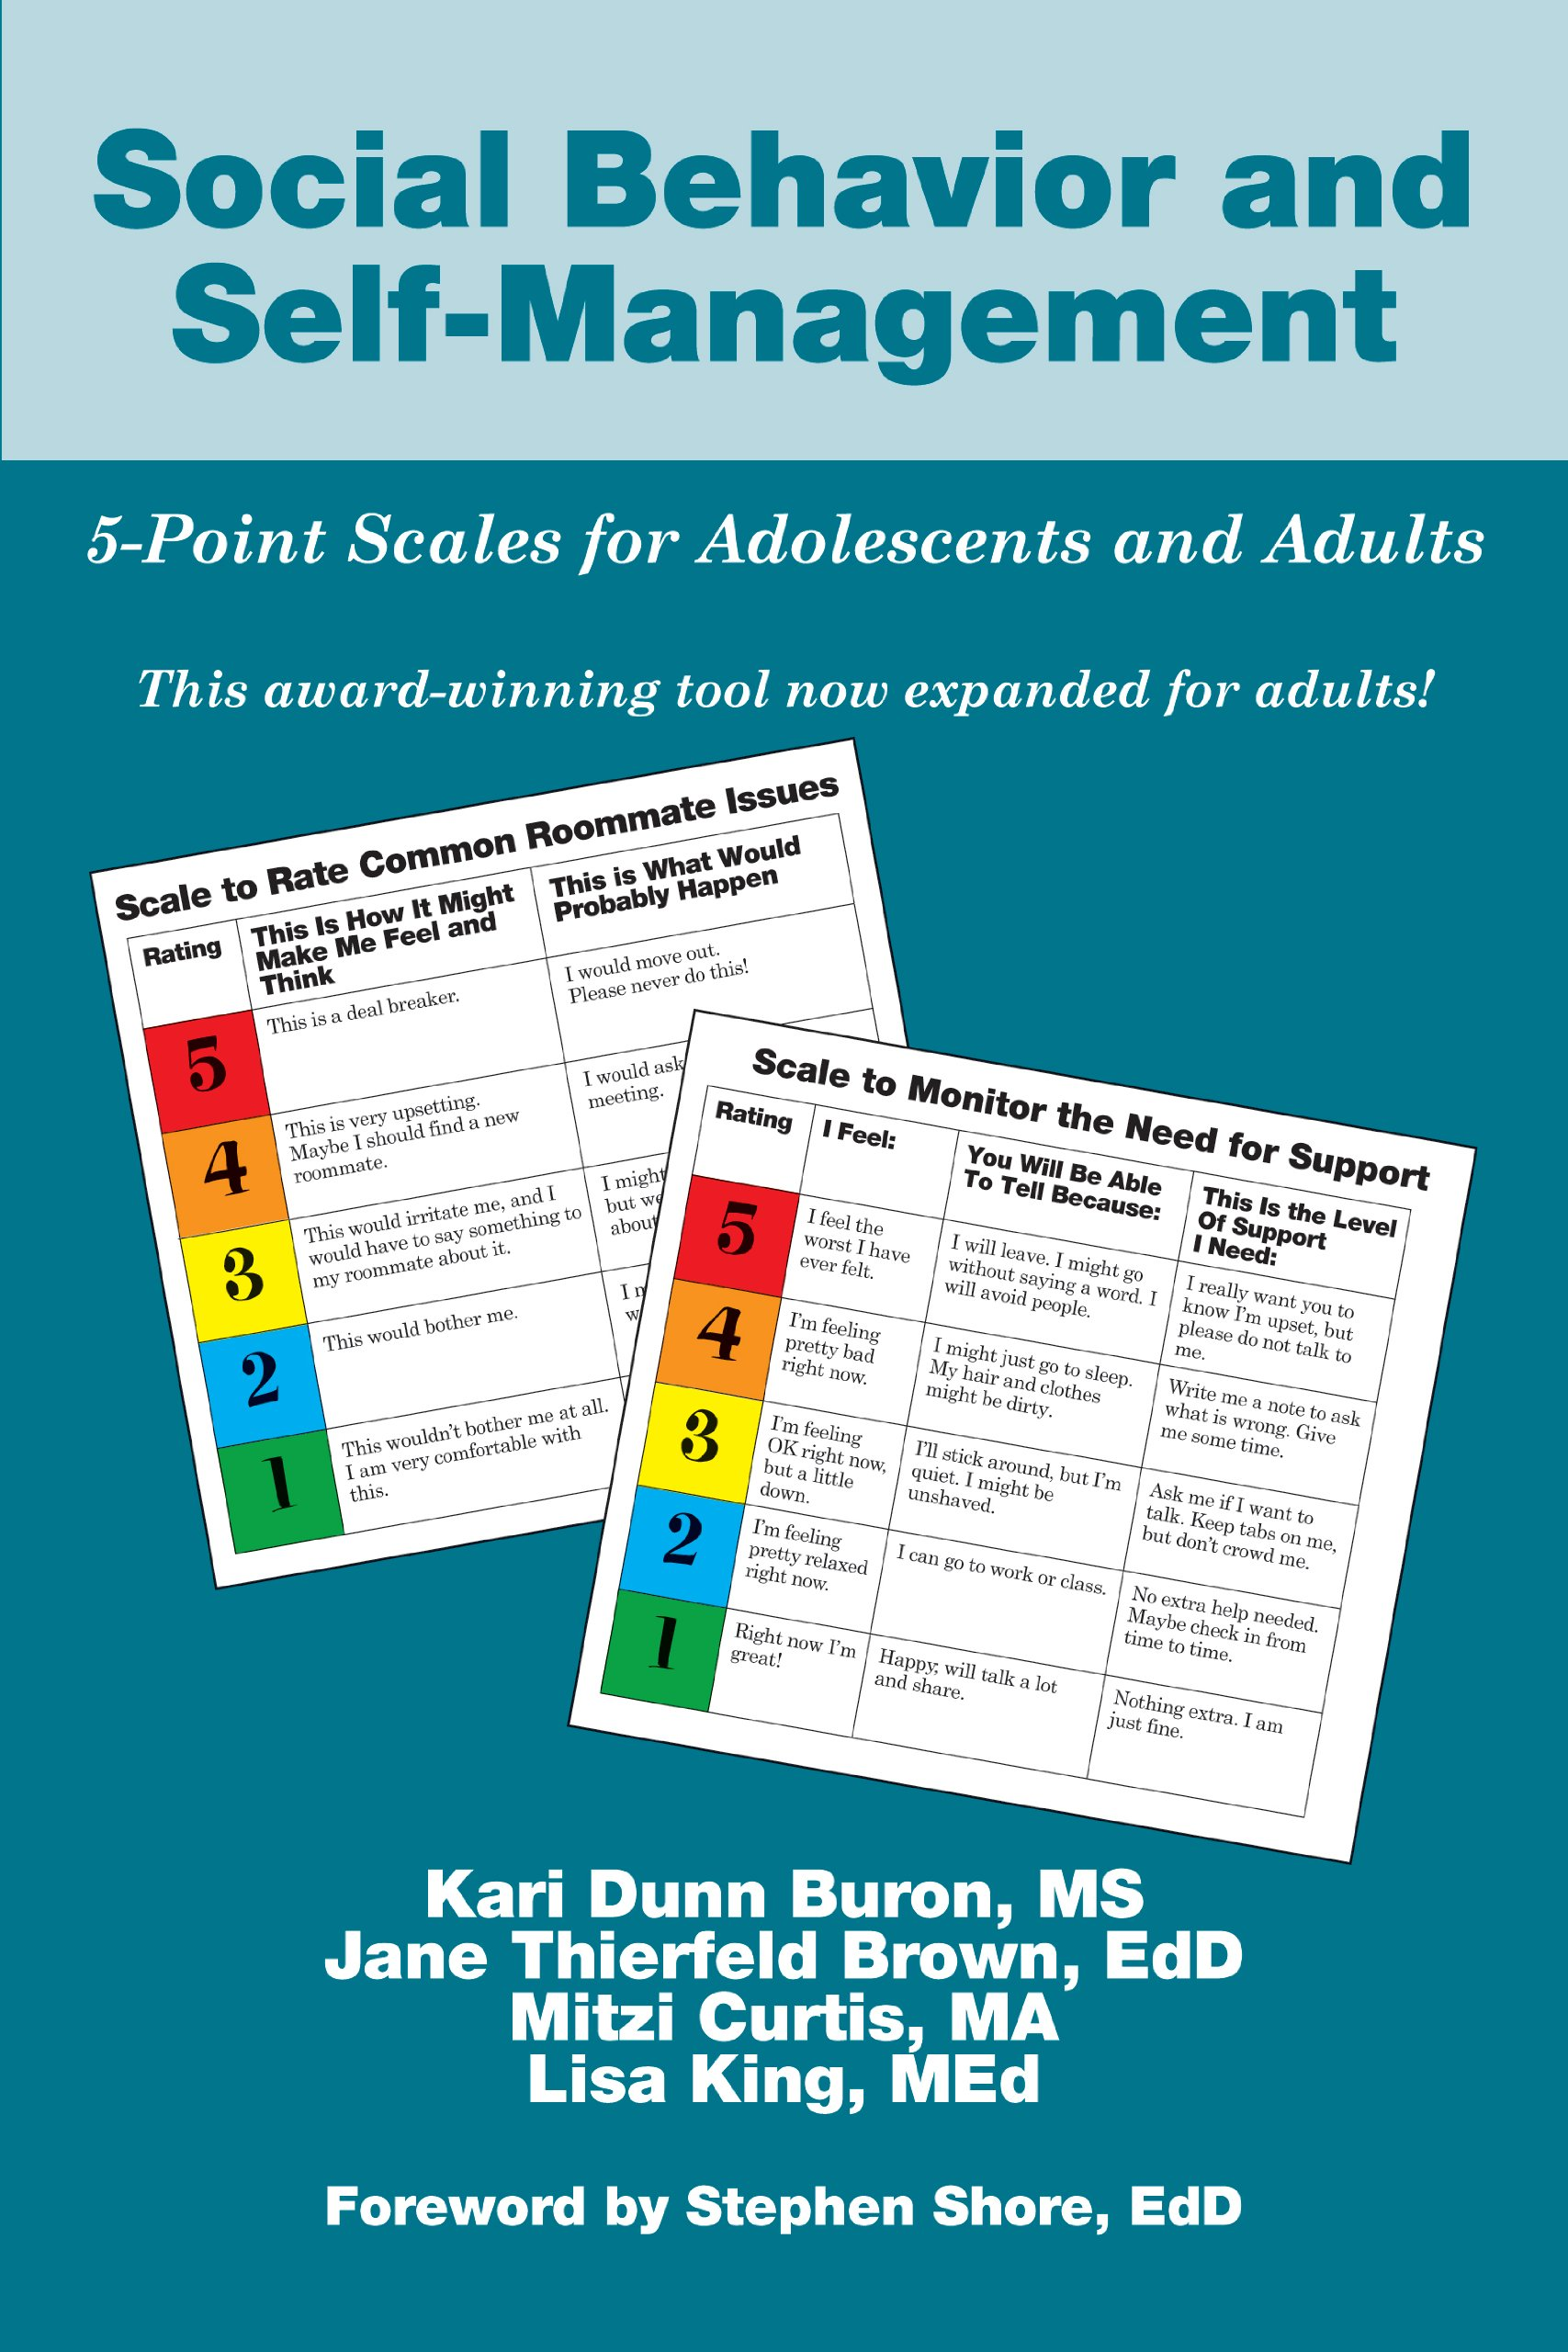 Social Behavior Self Management 5 Point Adolescents product image